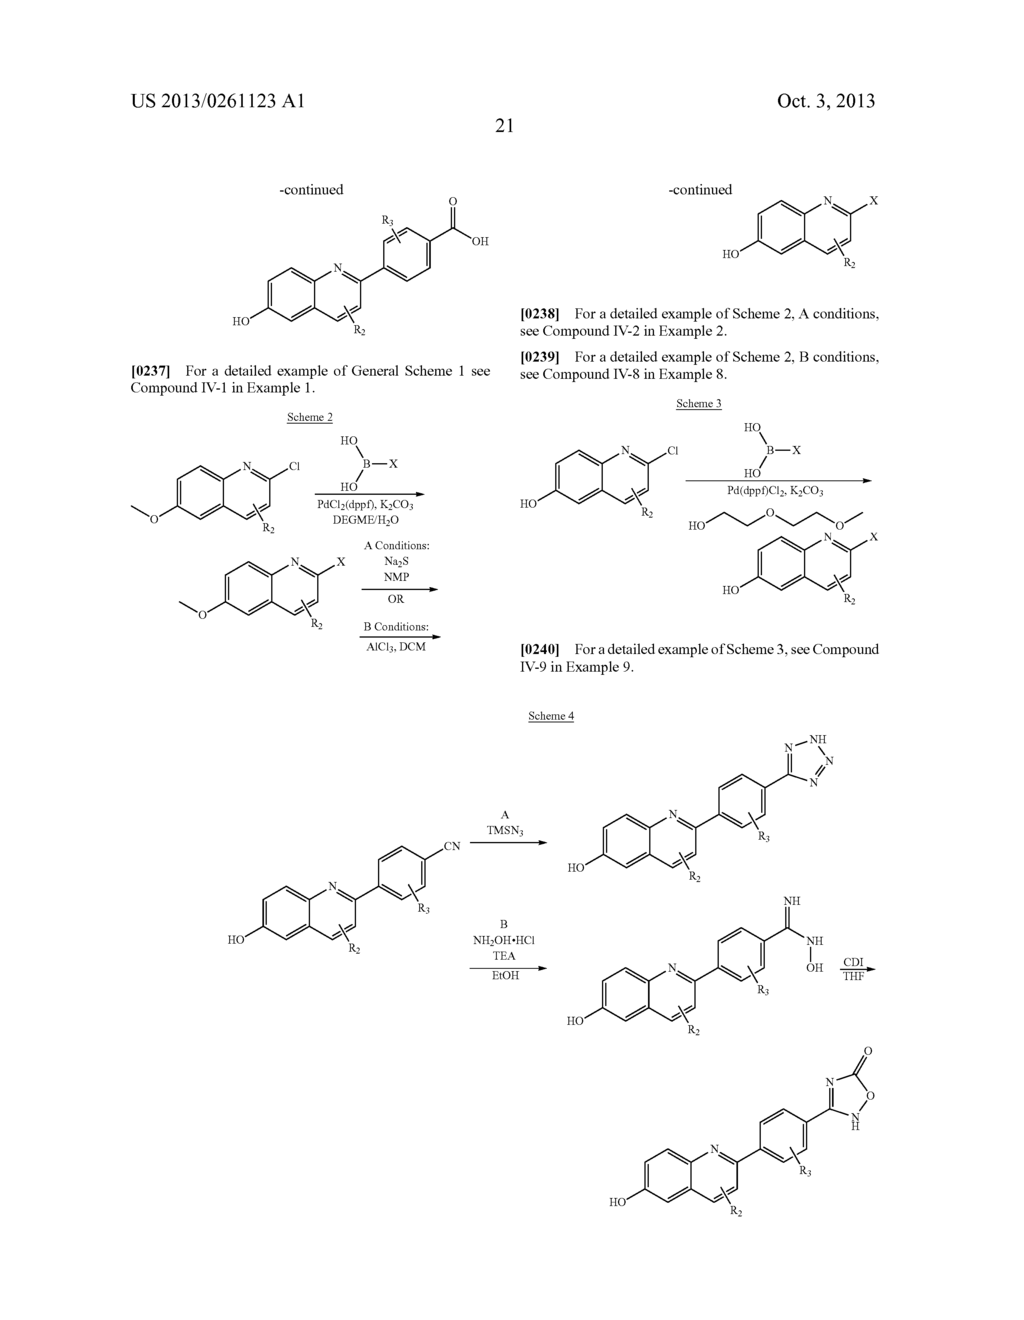 Novel Substituted Bicyclic Aromatic Compounds as S-Nitrosoglutathione     Reductase Inhibitors - diagram, schematic, and image 22